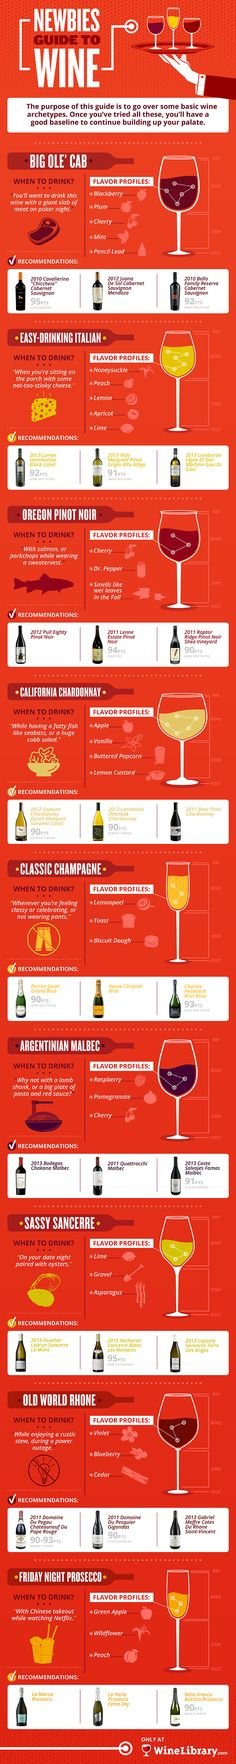 Brandy and Wine. Want Good Ideas About Wine Then Check This Out! Wine has been a luxurious escape and way to celebrate life since the beginning of time. To get the fullest potential out of wine, learn more about it. Wine Tasting Party, Wine Parties, Wine Facts, Wine Education, Wine Guide, Wine Cheese, In Vino Veritas, Wine And Beer, Wine Key